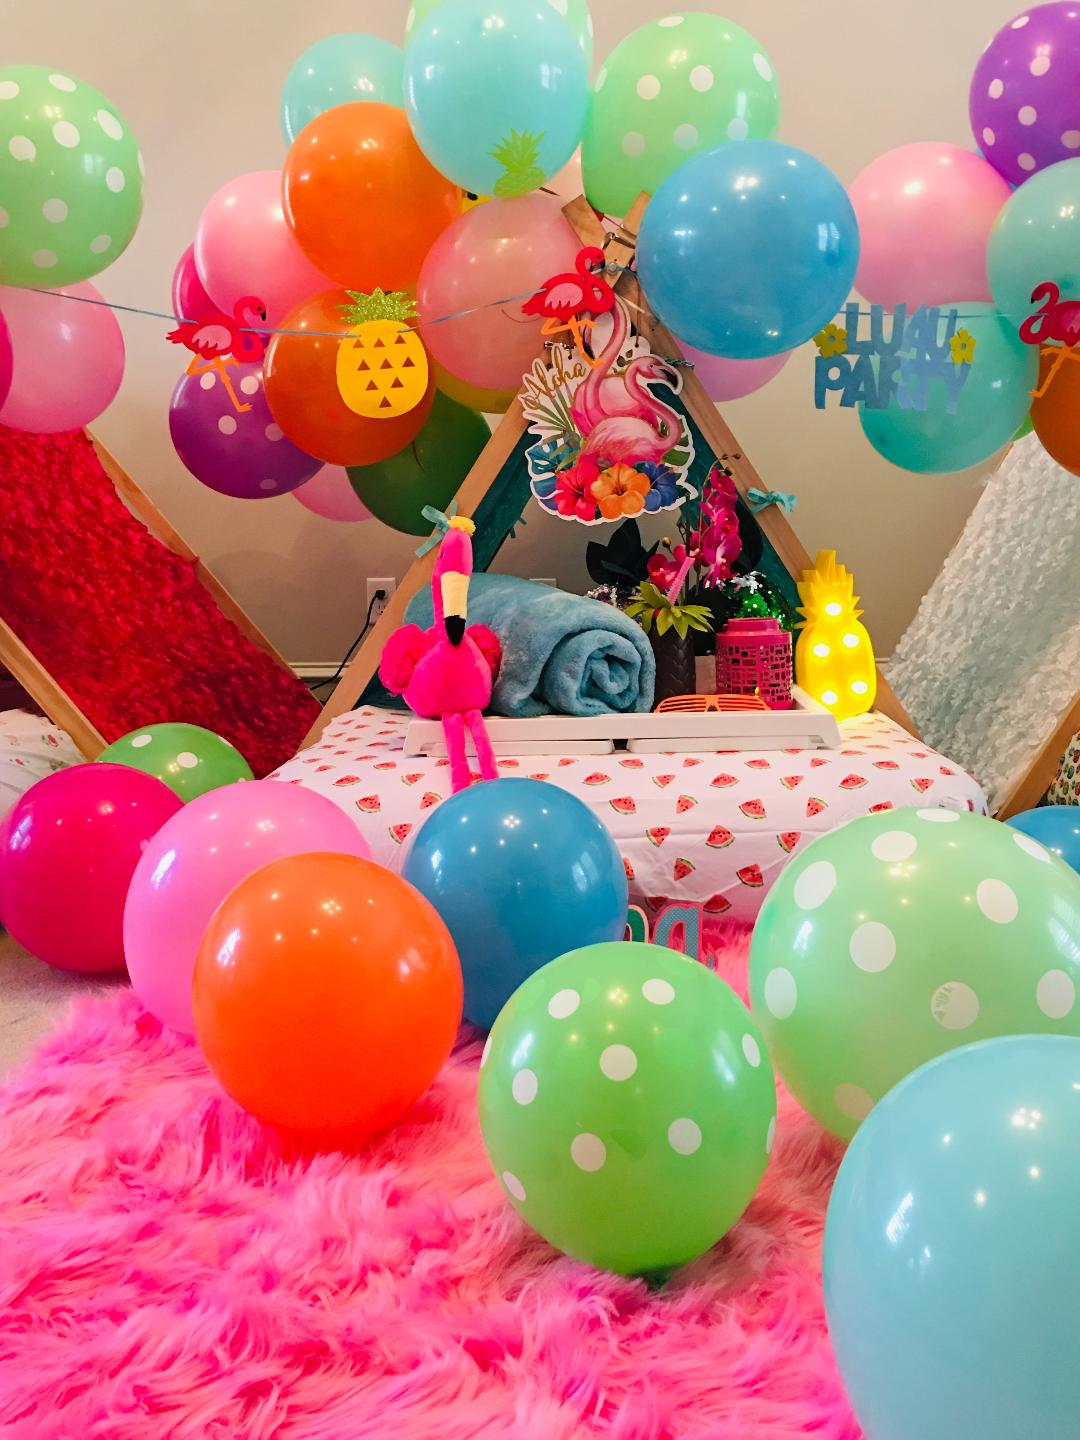 Tent Decorations For Birthday Party  from images.squarespace-cdn.com